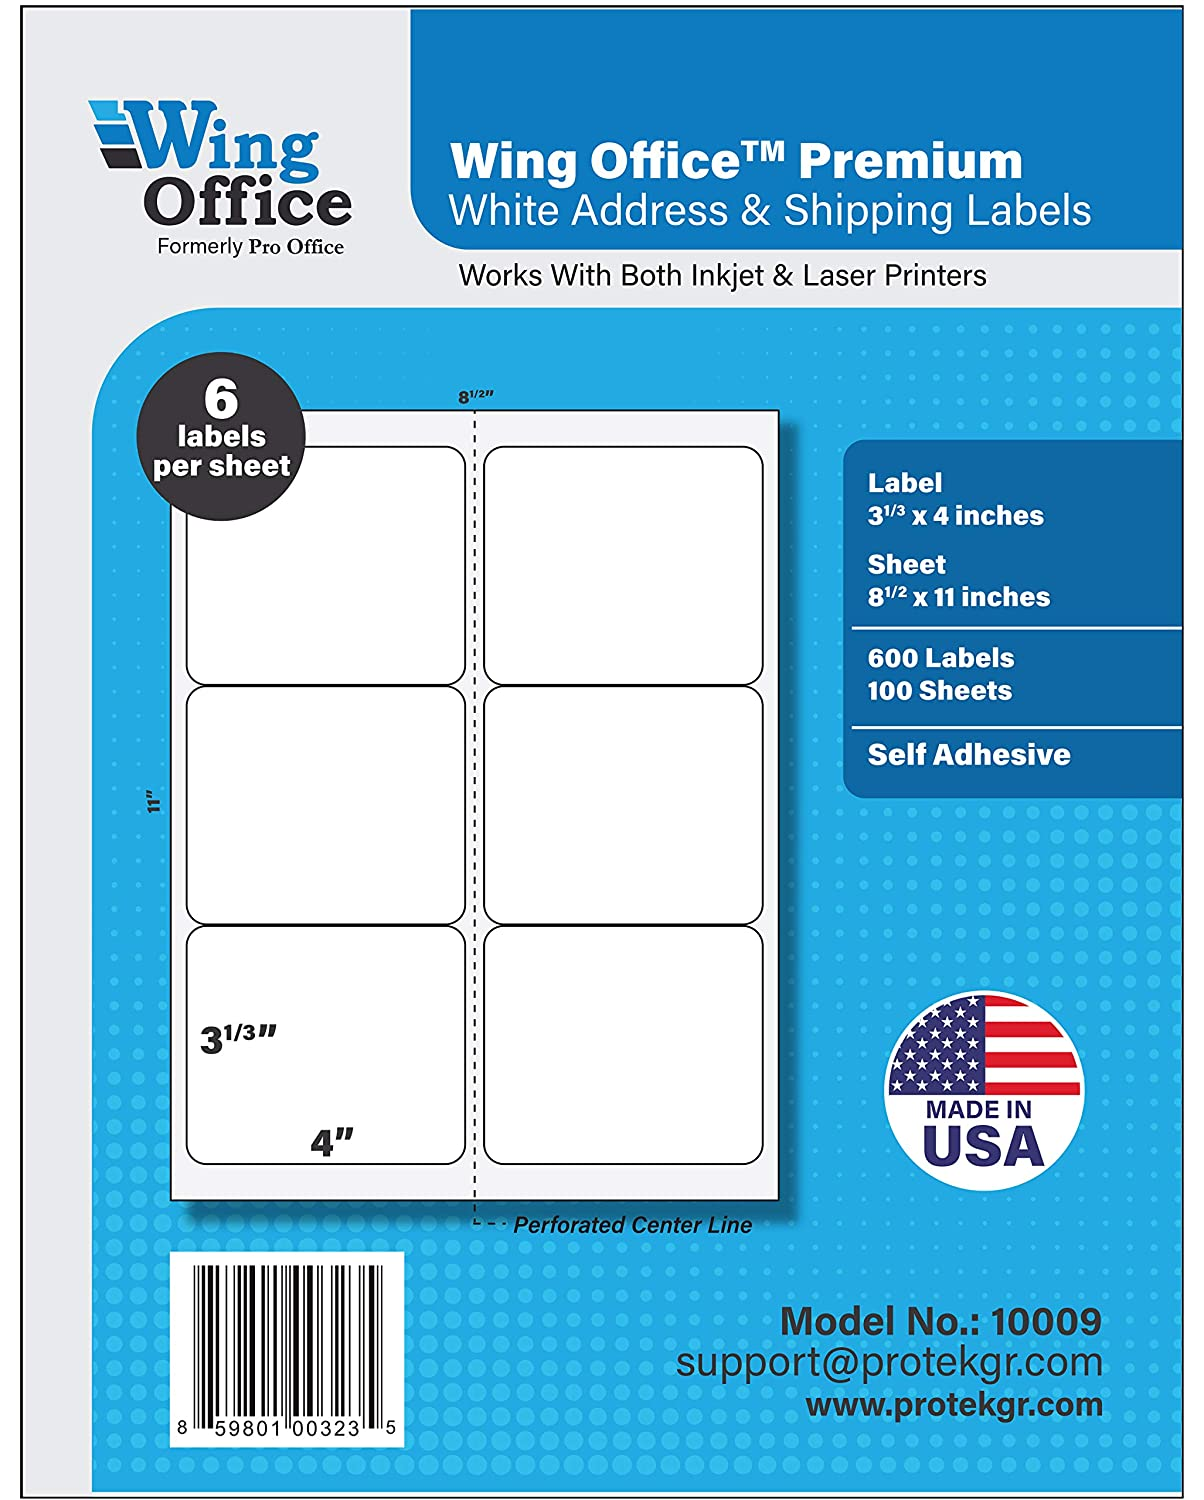 Pro Office Premium 600 Self Adhesive Shipping Labels for Laser Printers and Ink Jet Printers, White, Made in USA, 3.33 x 4 Inches, Pack of 600